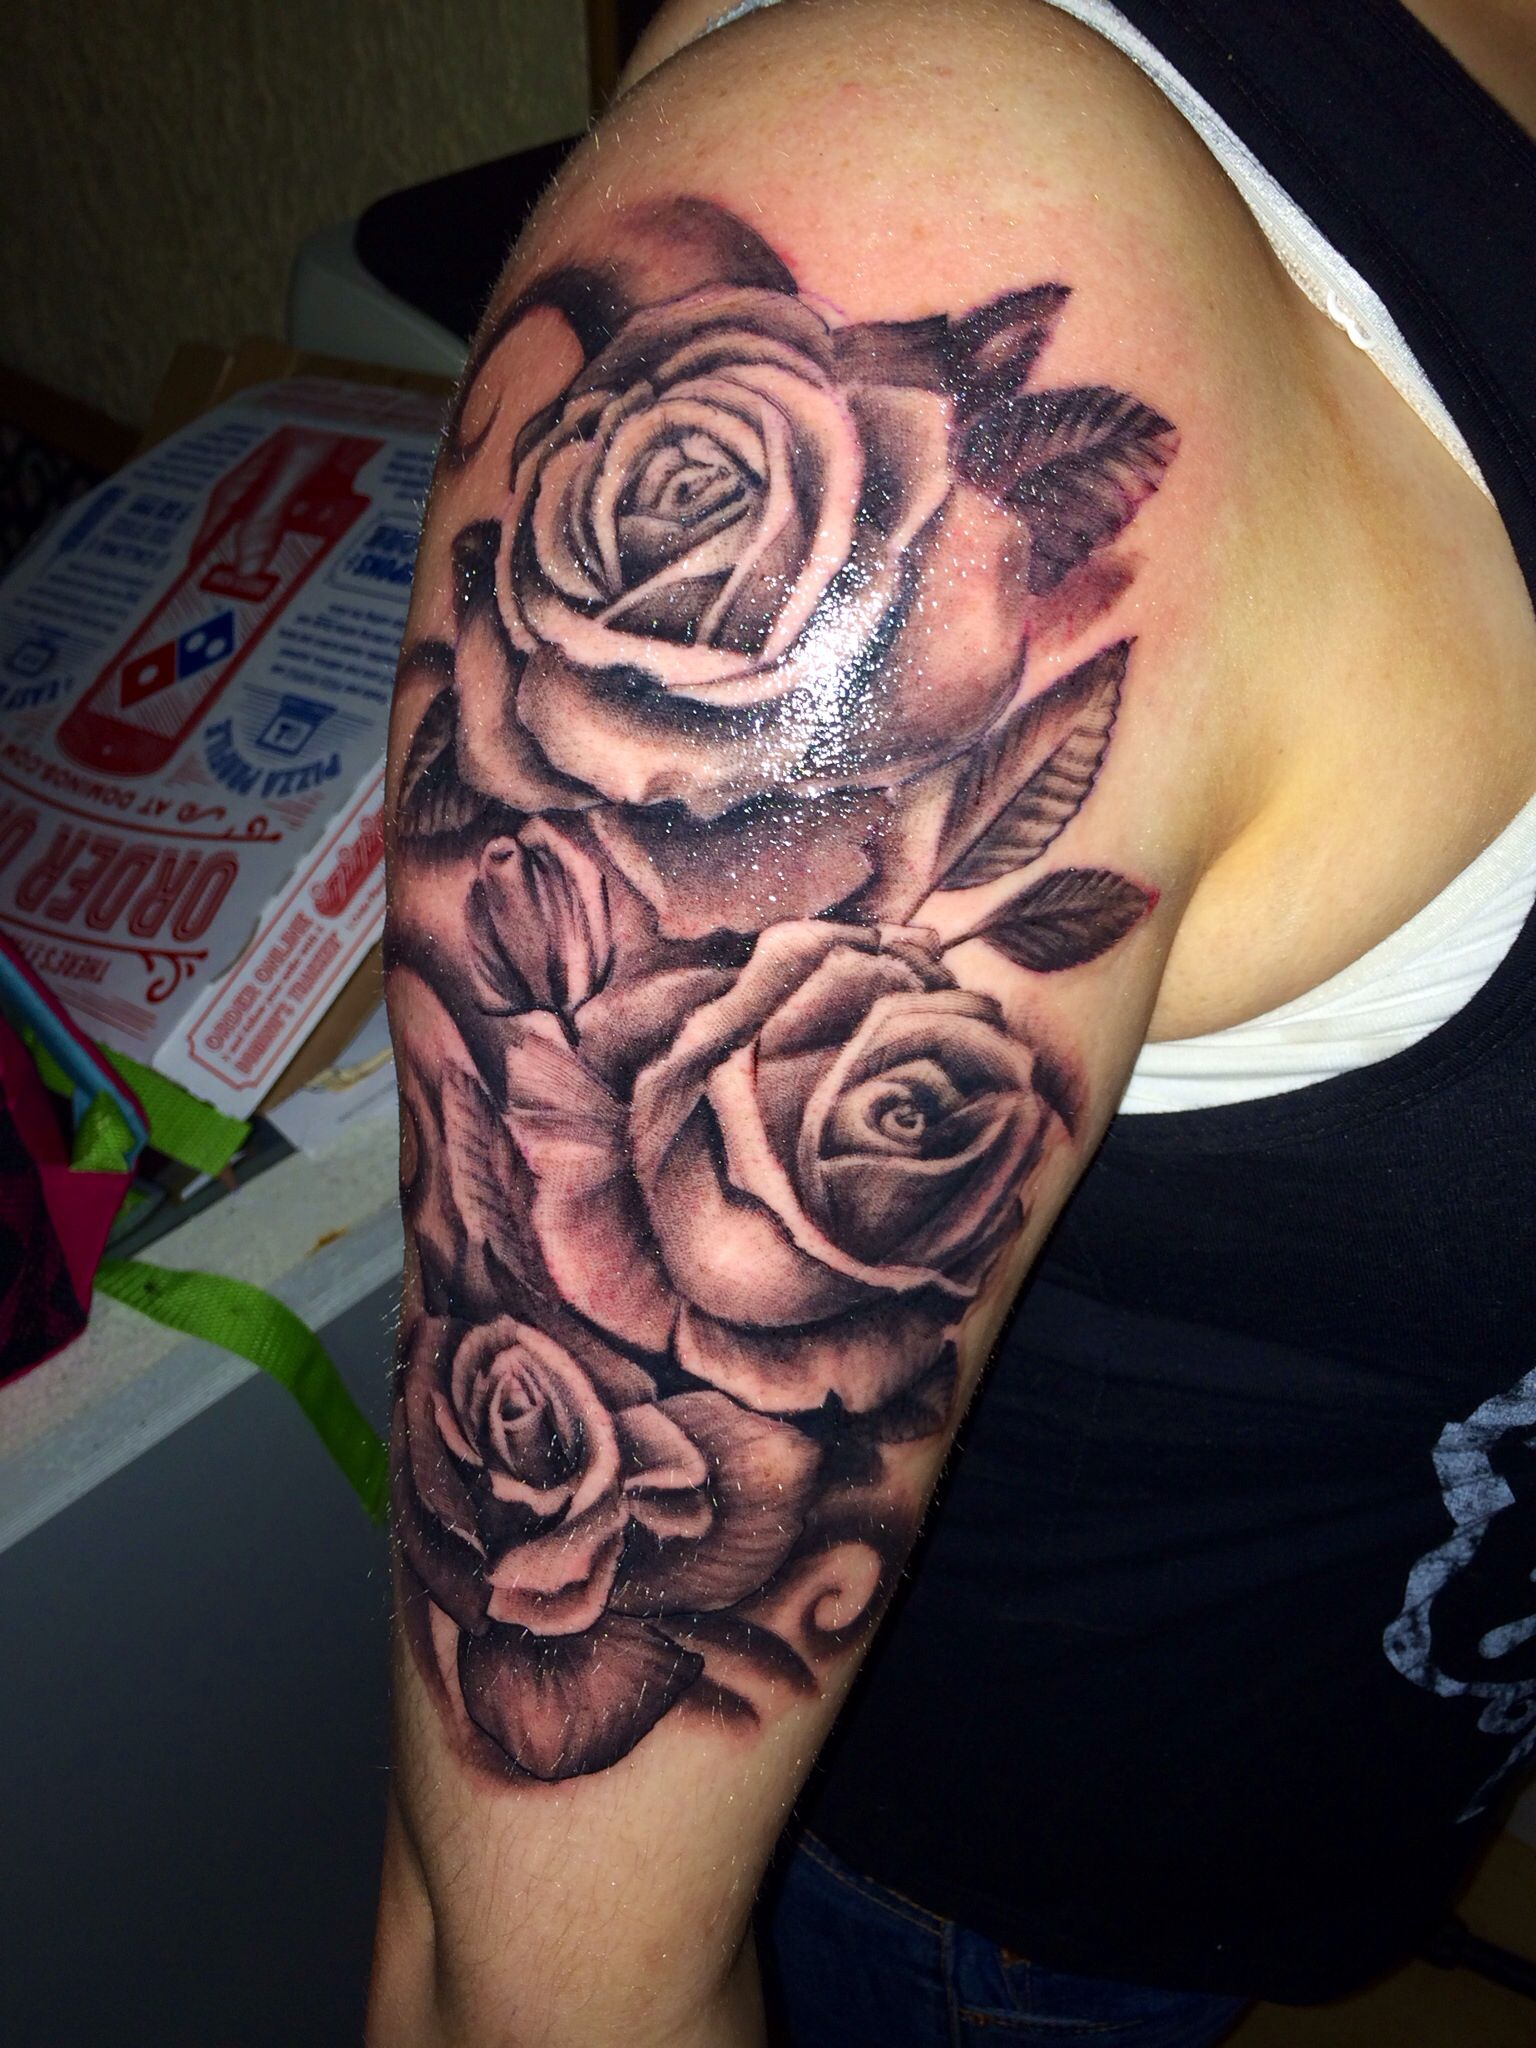 Just got this the last night percent idea for rose for Rose sleeve tattoos